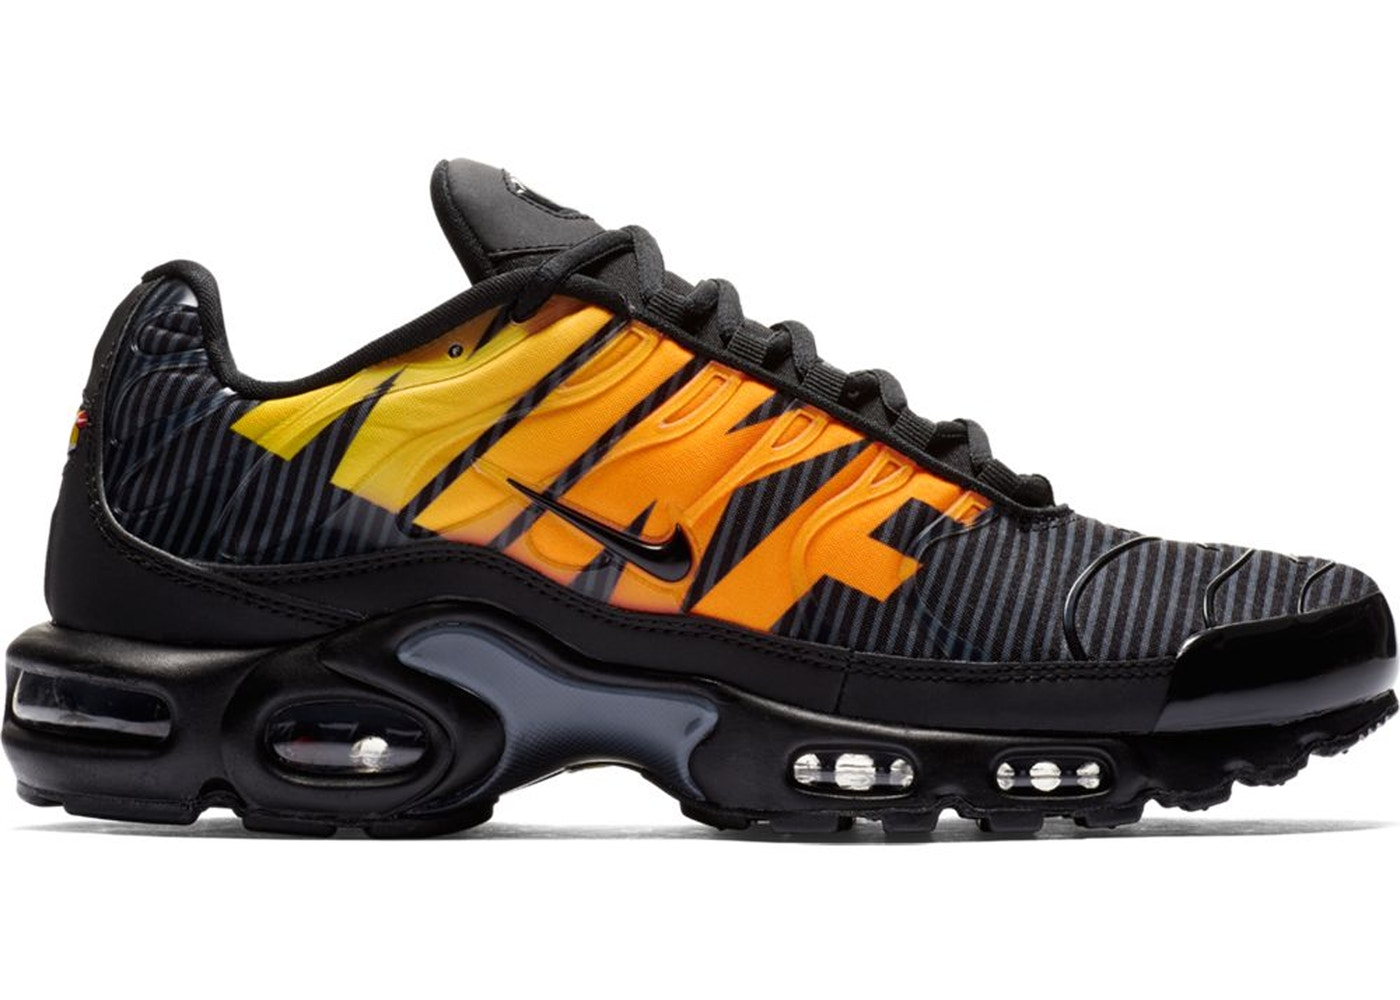 arrives d6c7d ece11 Air Max Plus Mercurial Black Orange